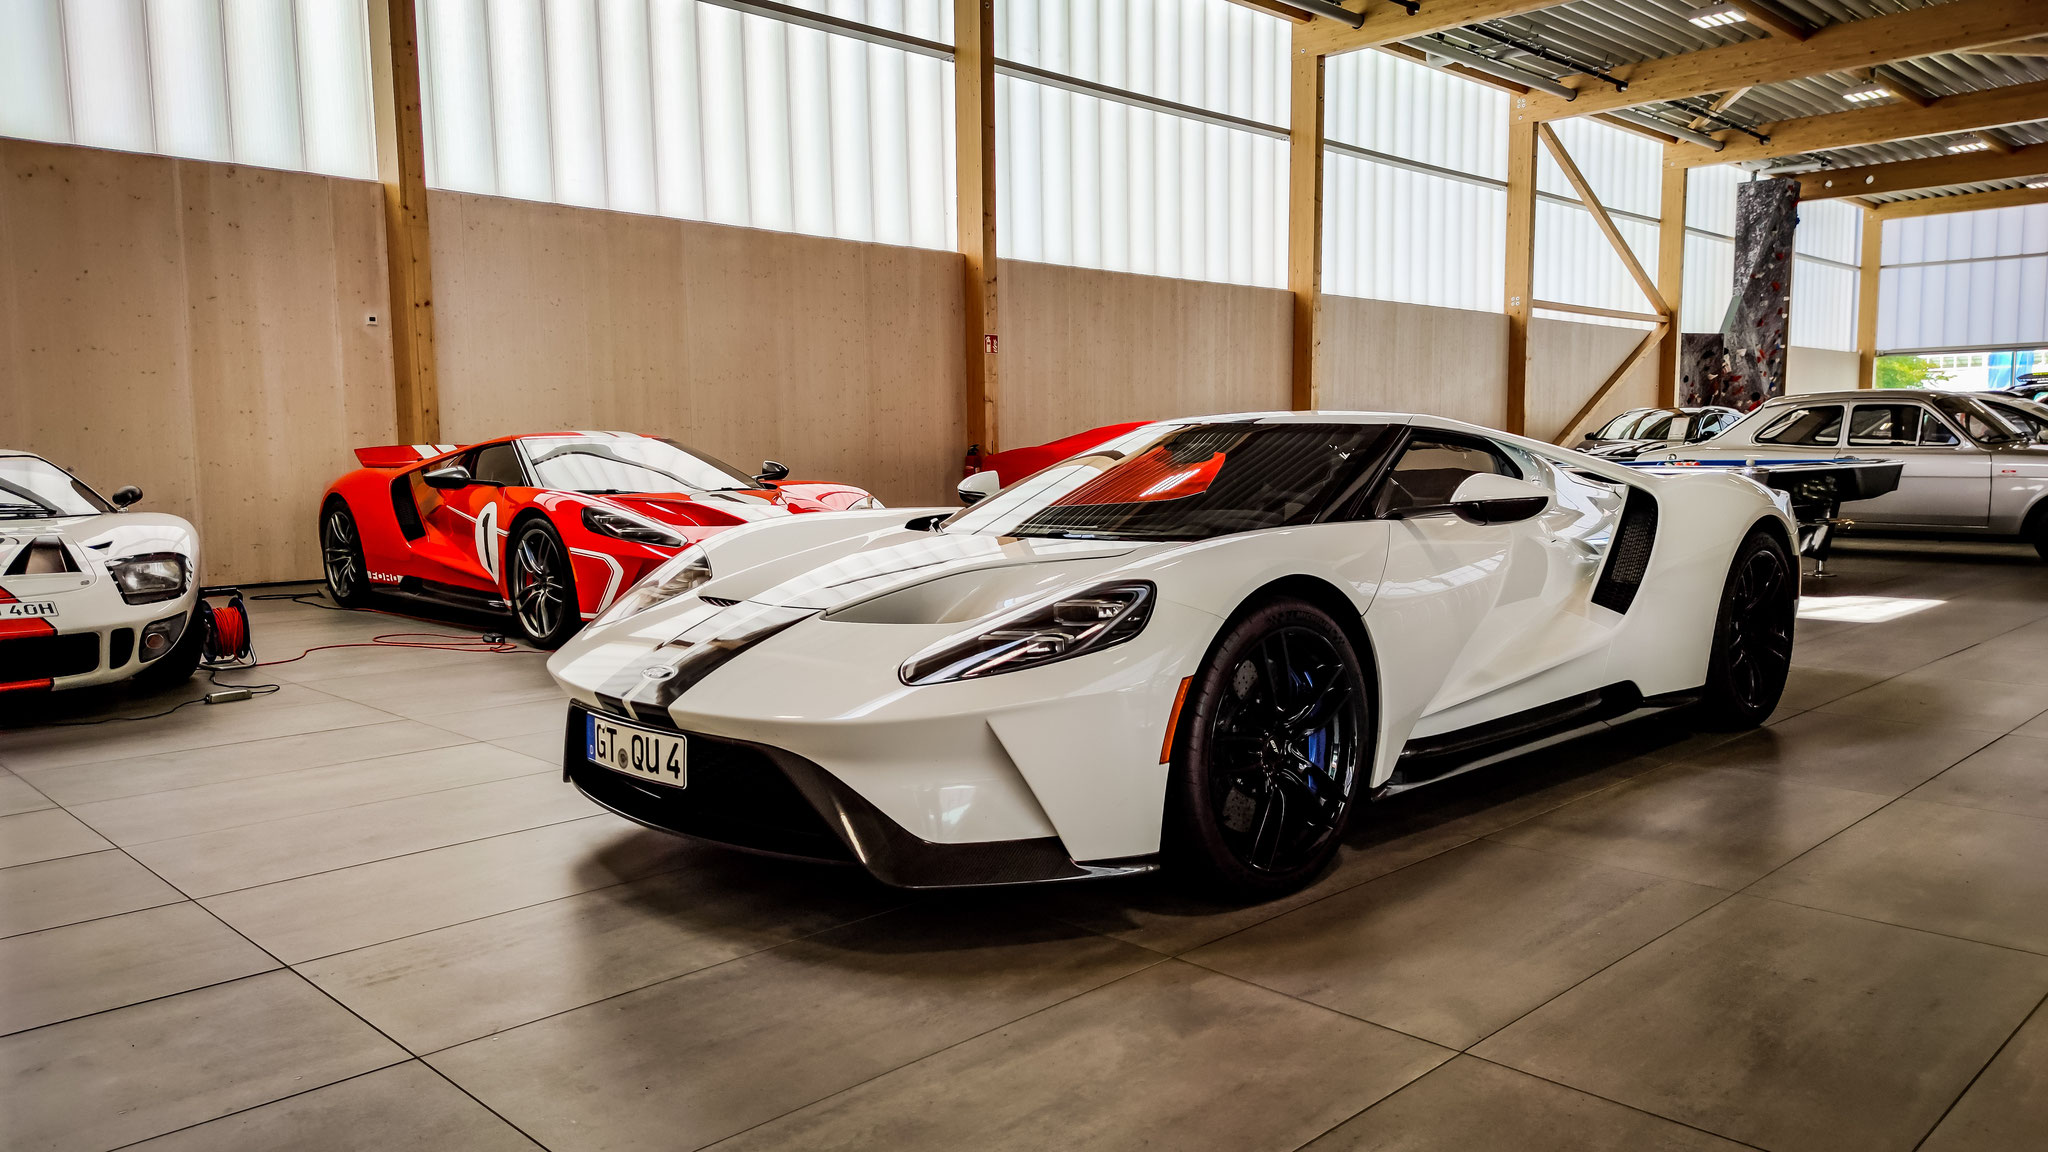 Ford GT - GT-QU-4